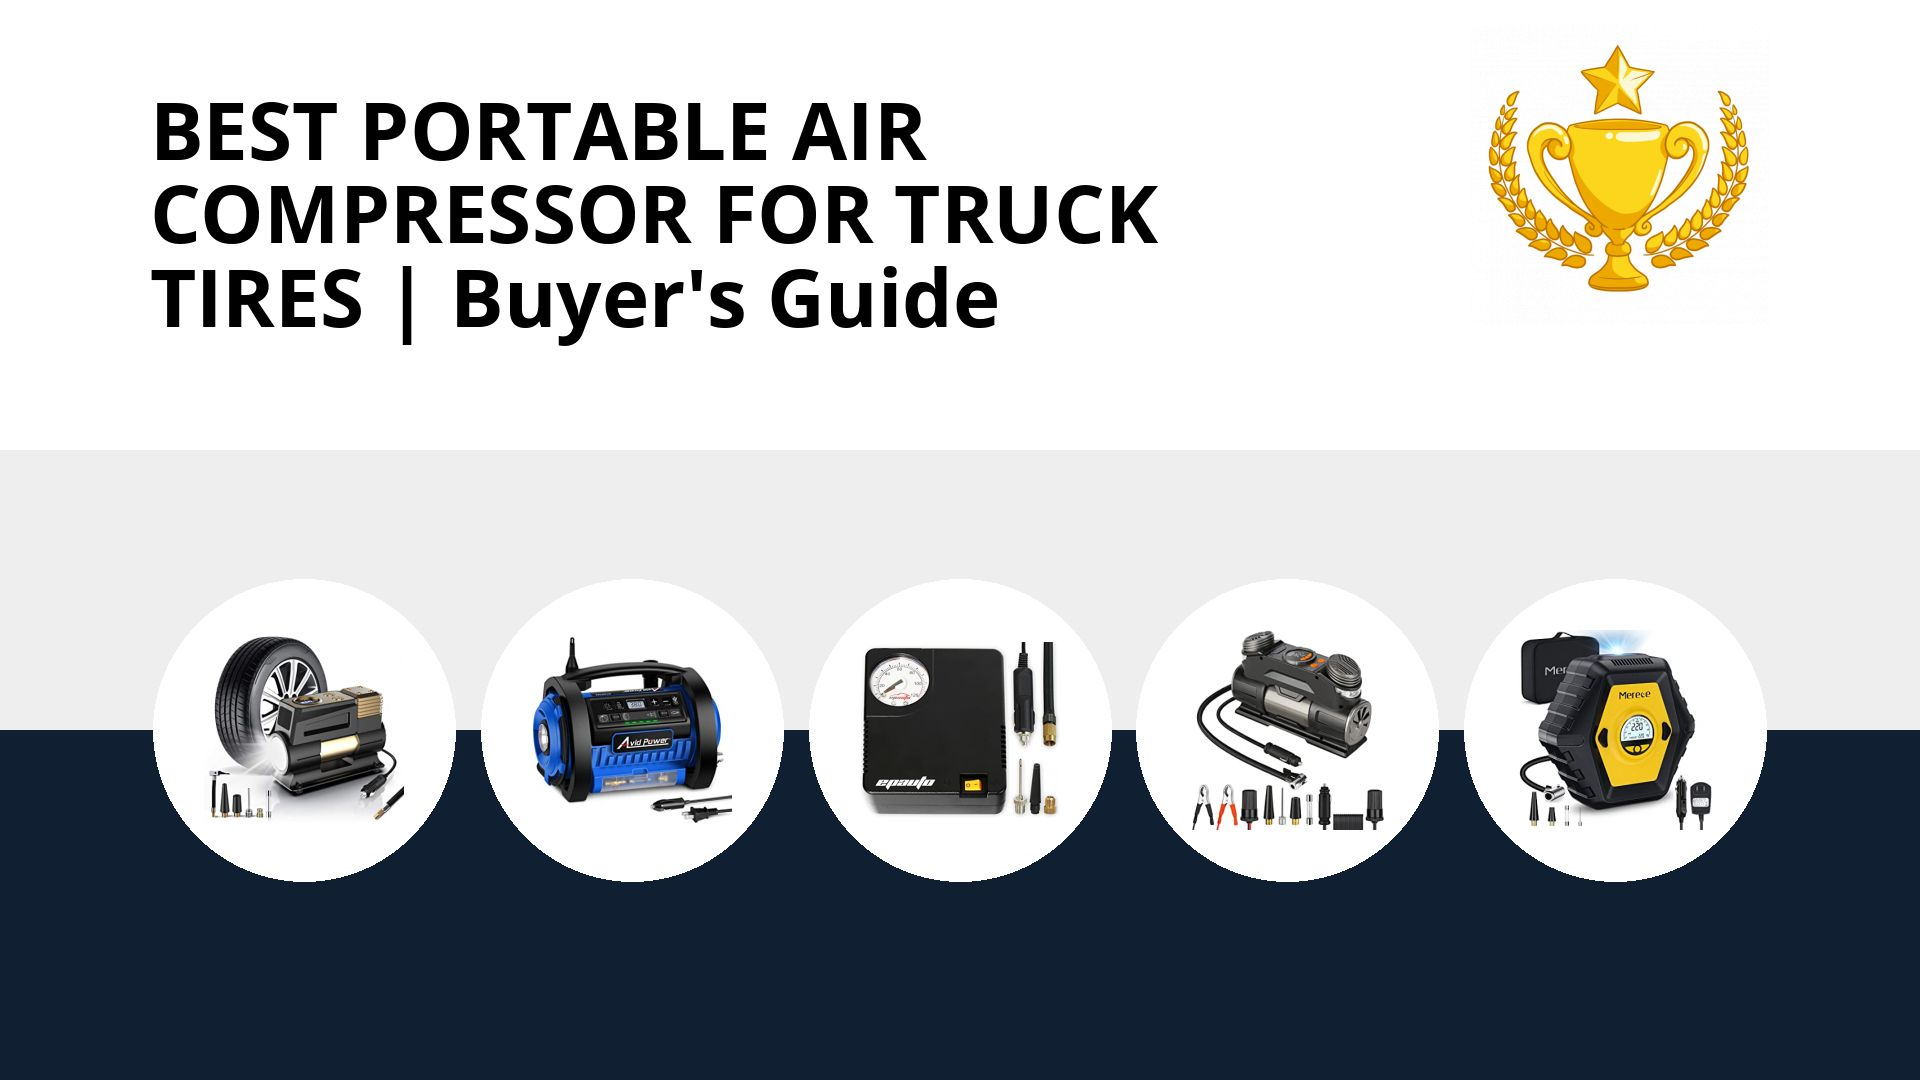 Best Portable Air Compressor For Truck Tires: image